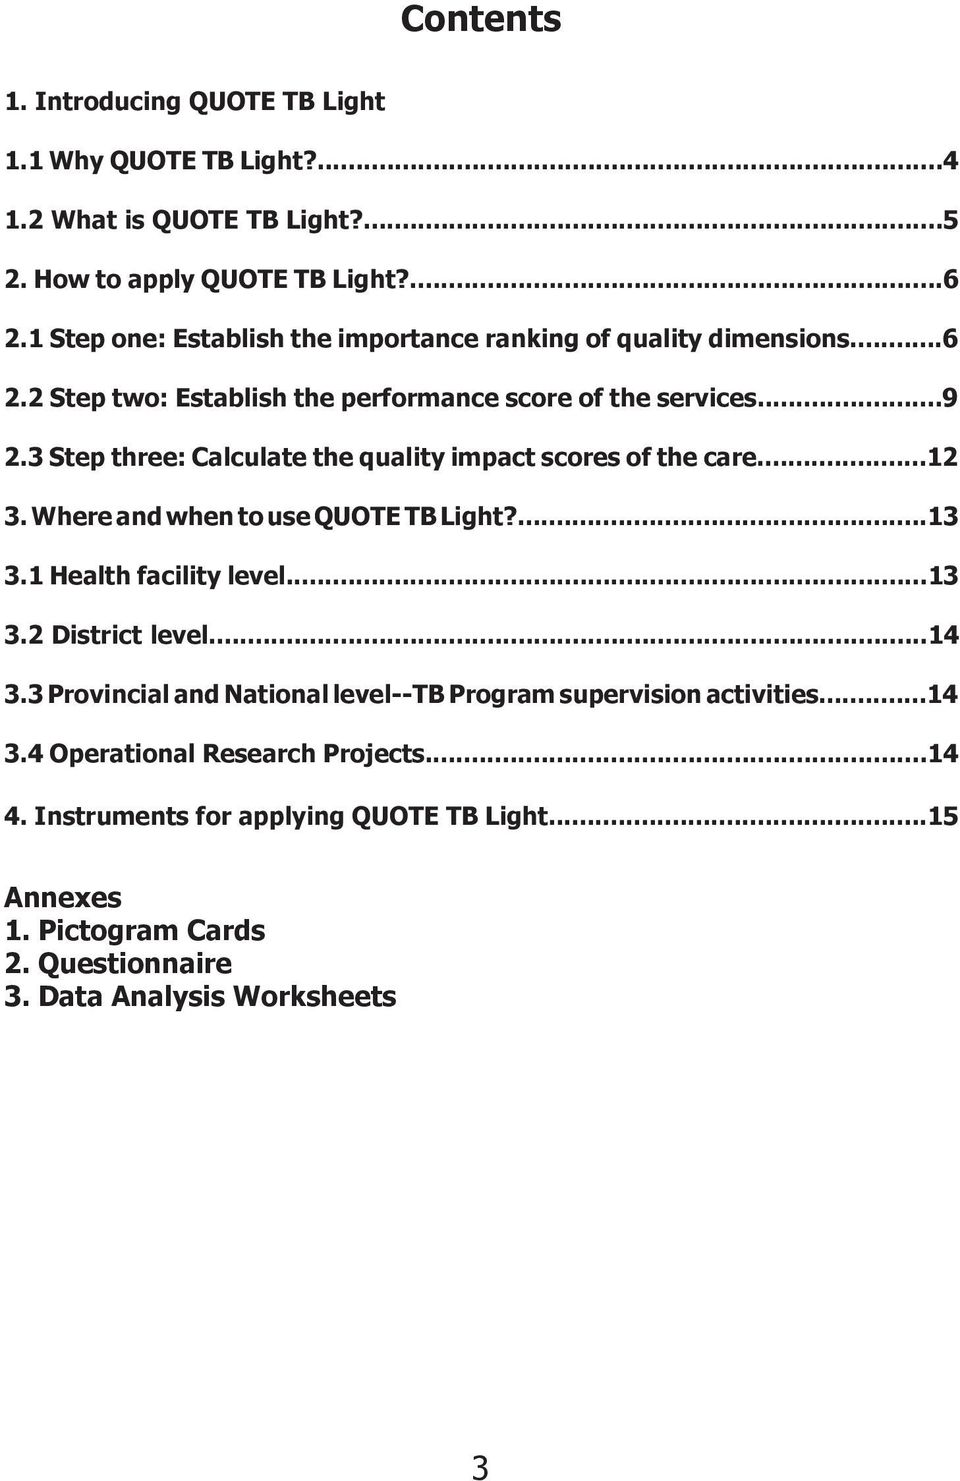 3 Step three: Calculate the quality impact scores of the care...12 3. Where and when to use QUOTE TB Light?...13 3.1 Health facility level...13 3.2 District level...14 3.